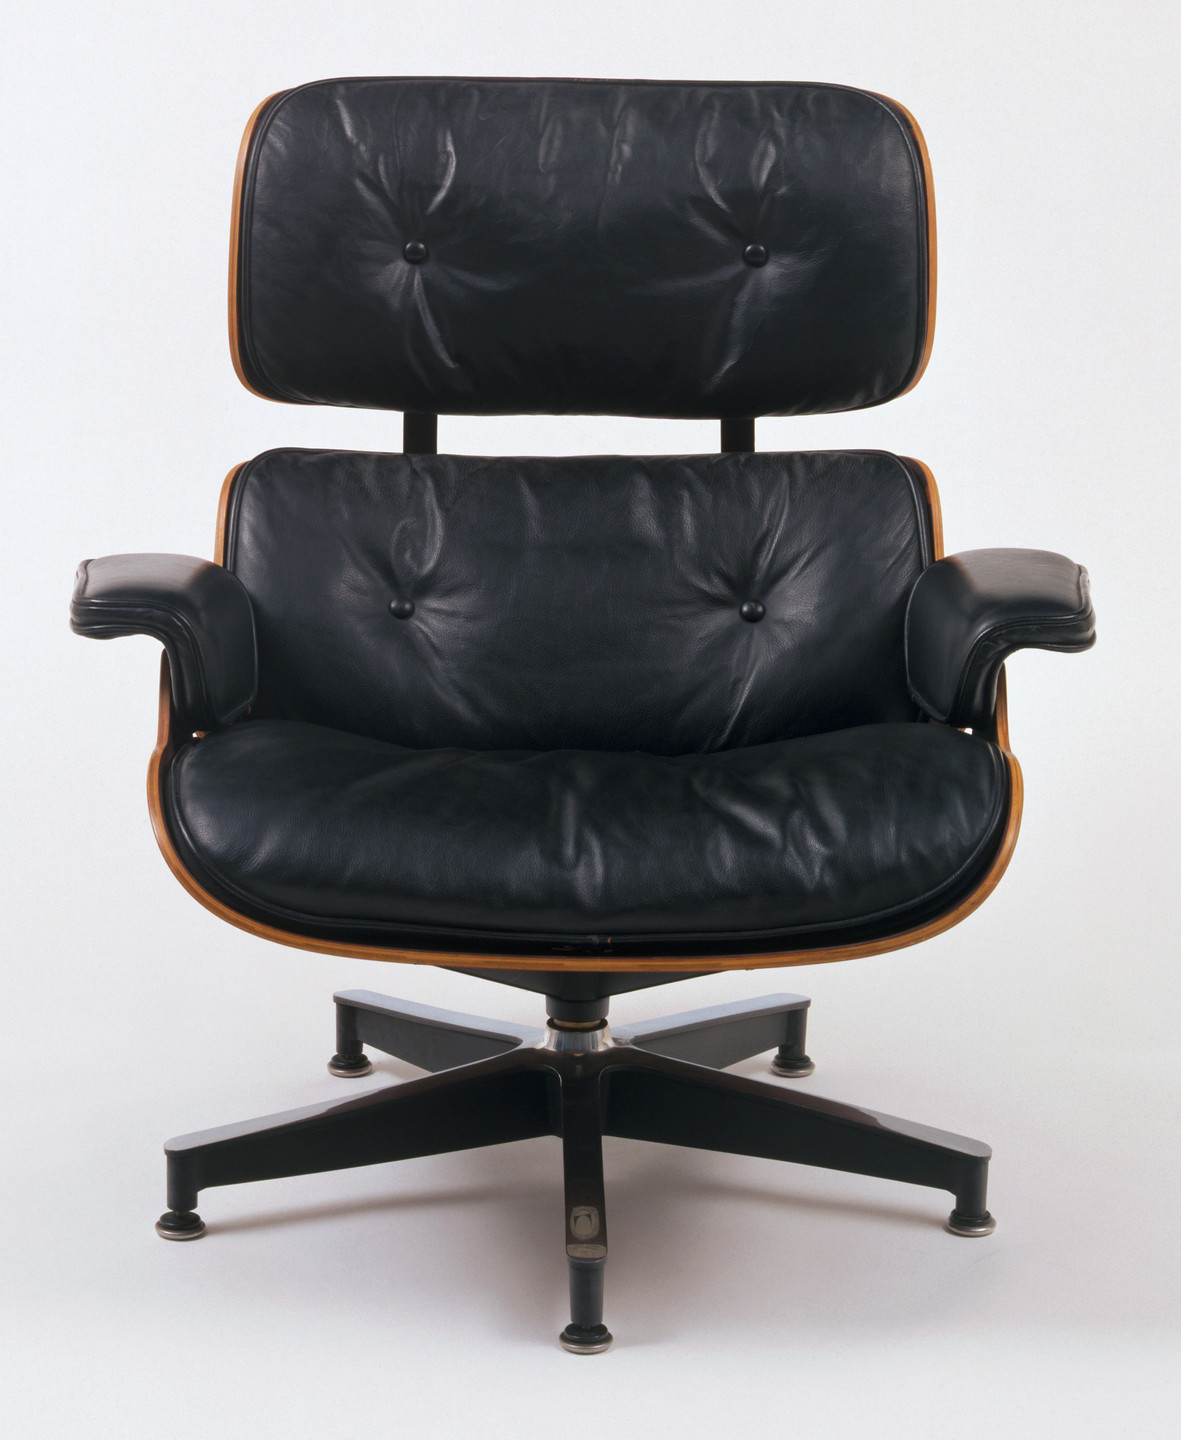 Charles Eames, Ray Eames. Lounge Chair and Ottoman. 1956